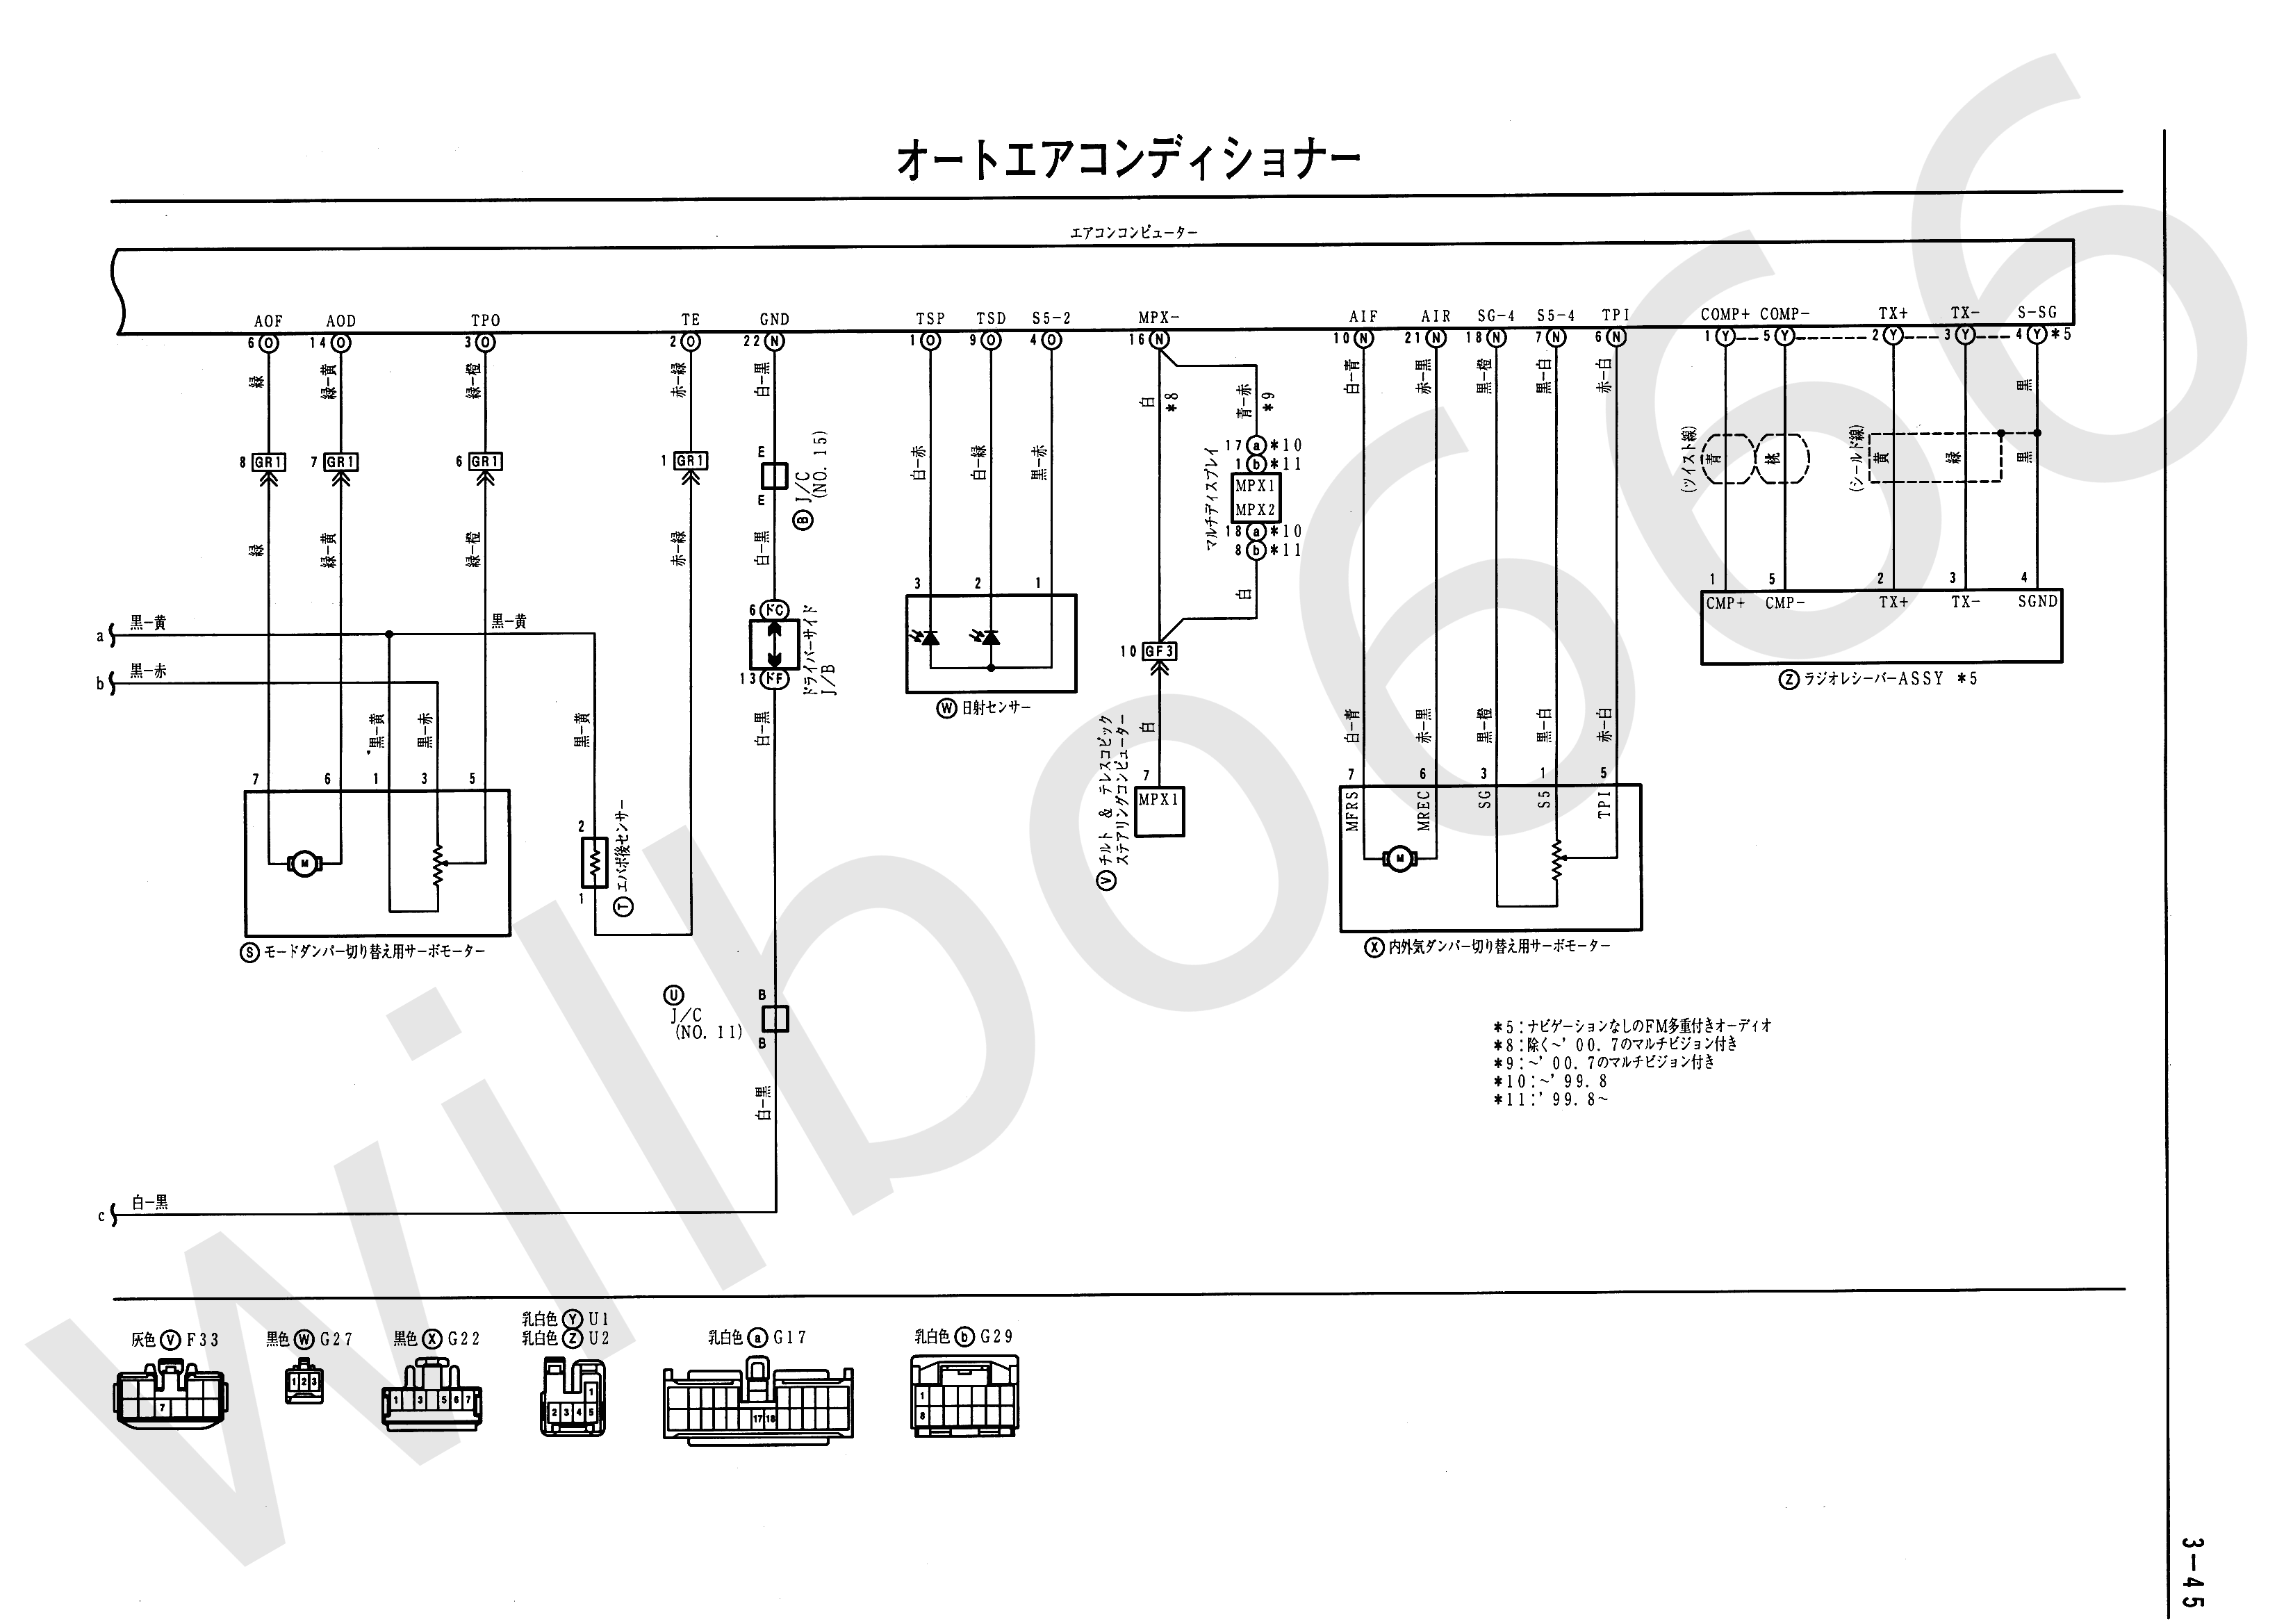 JZS161 Electrical Wiring Diagram 6748505 3 45?resize\\=3300%2C2337 rough house 50cc scooter wiring diagram kymco scooter parts 49Cc Scooter Wiring Diagram at bakdesigns.co